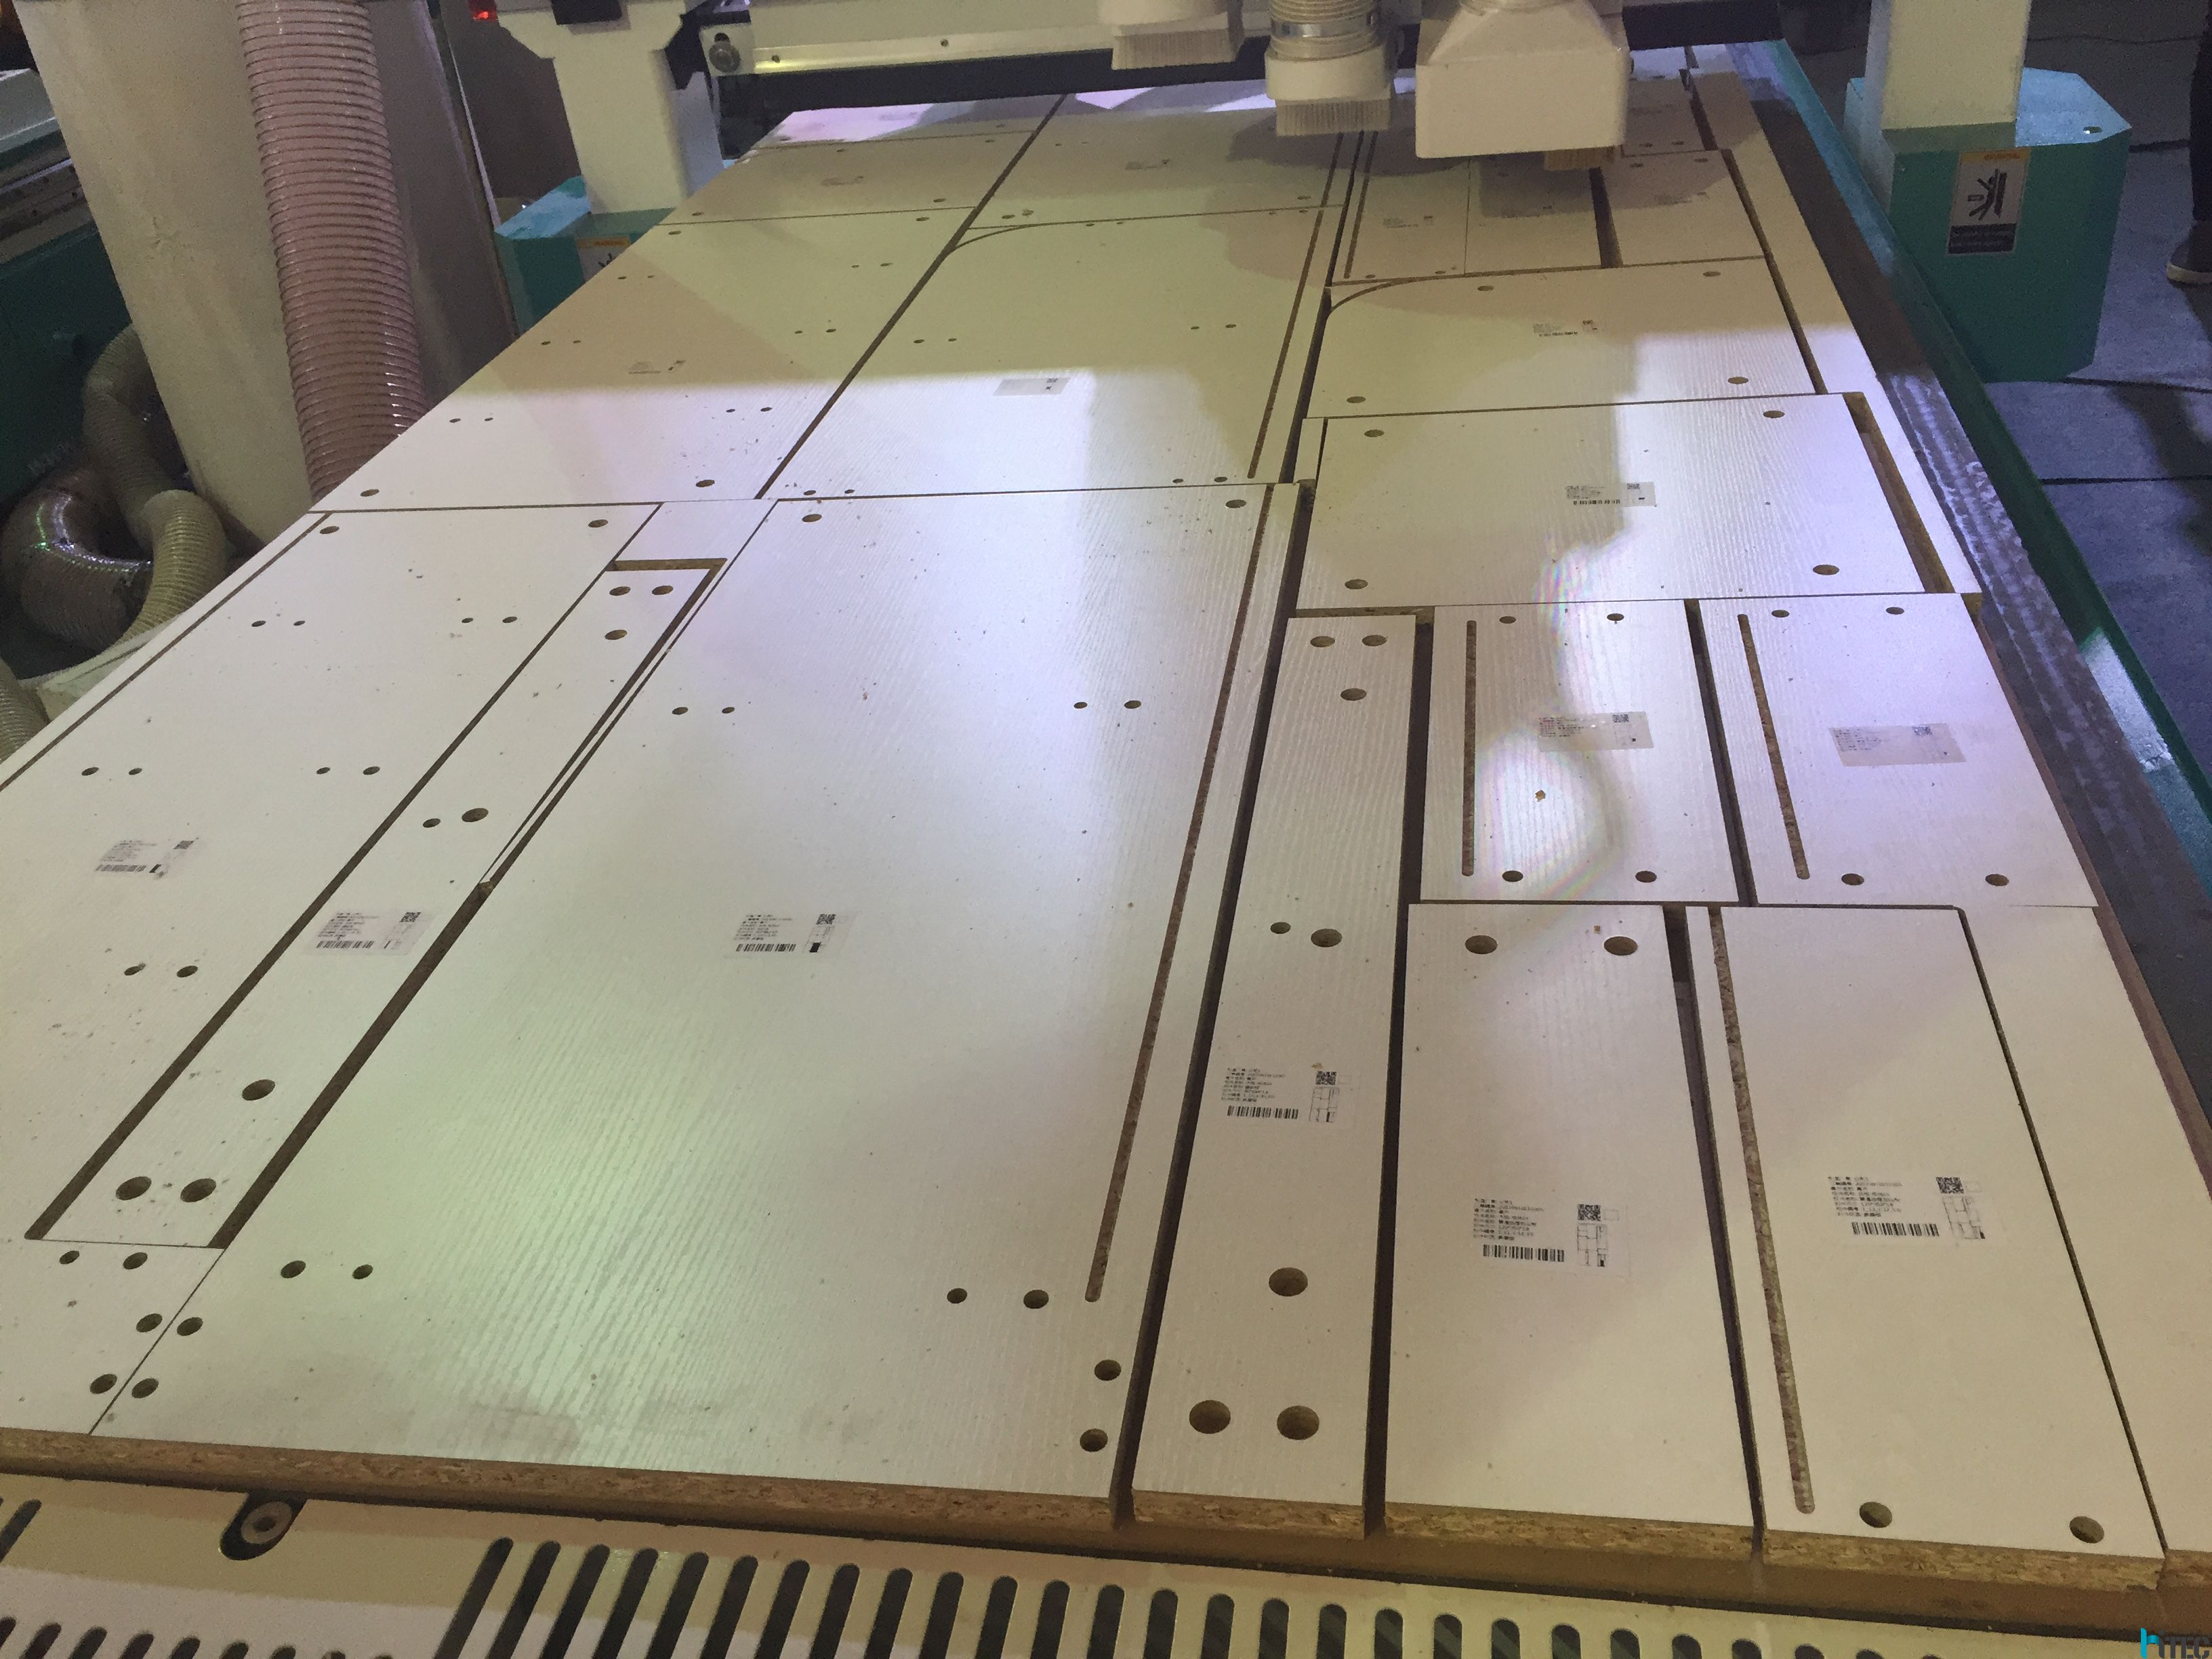 ... making the kitchen doors. Than enter the design to control systermuse our cnc wood machine cutting and engraving the mdf materials & wood cnc machine for cabinet door making - Hitec hot news - HITEC